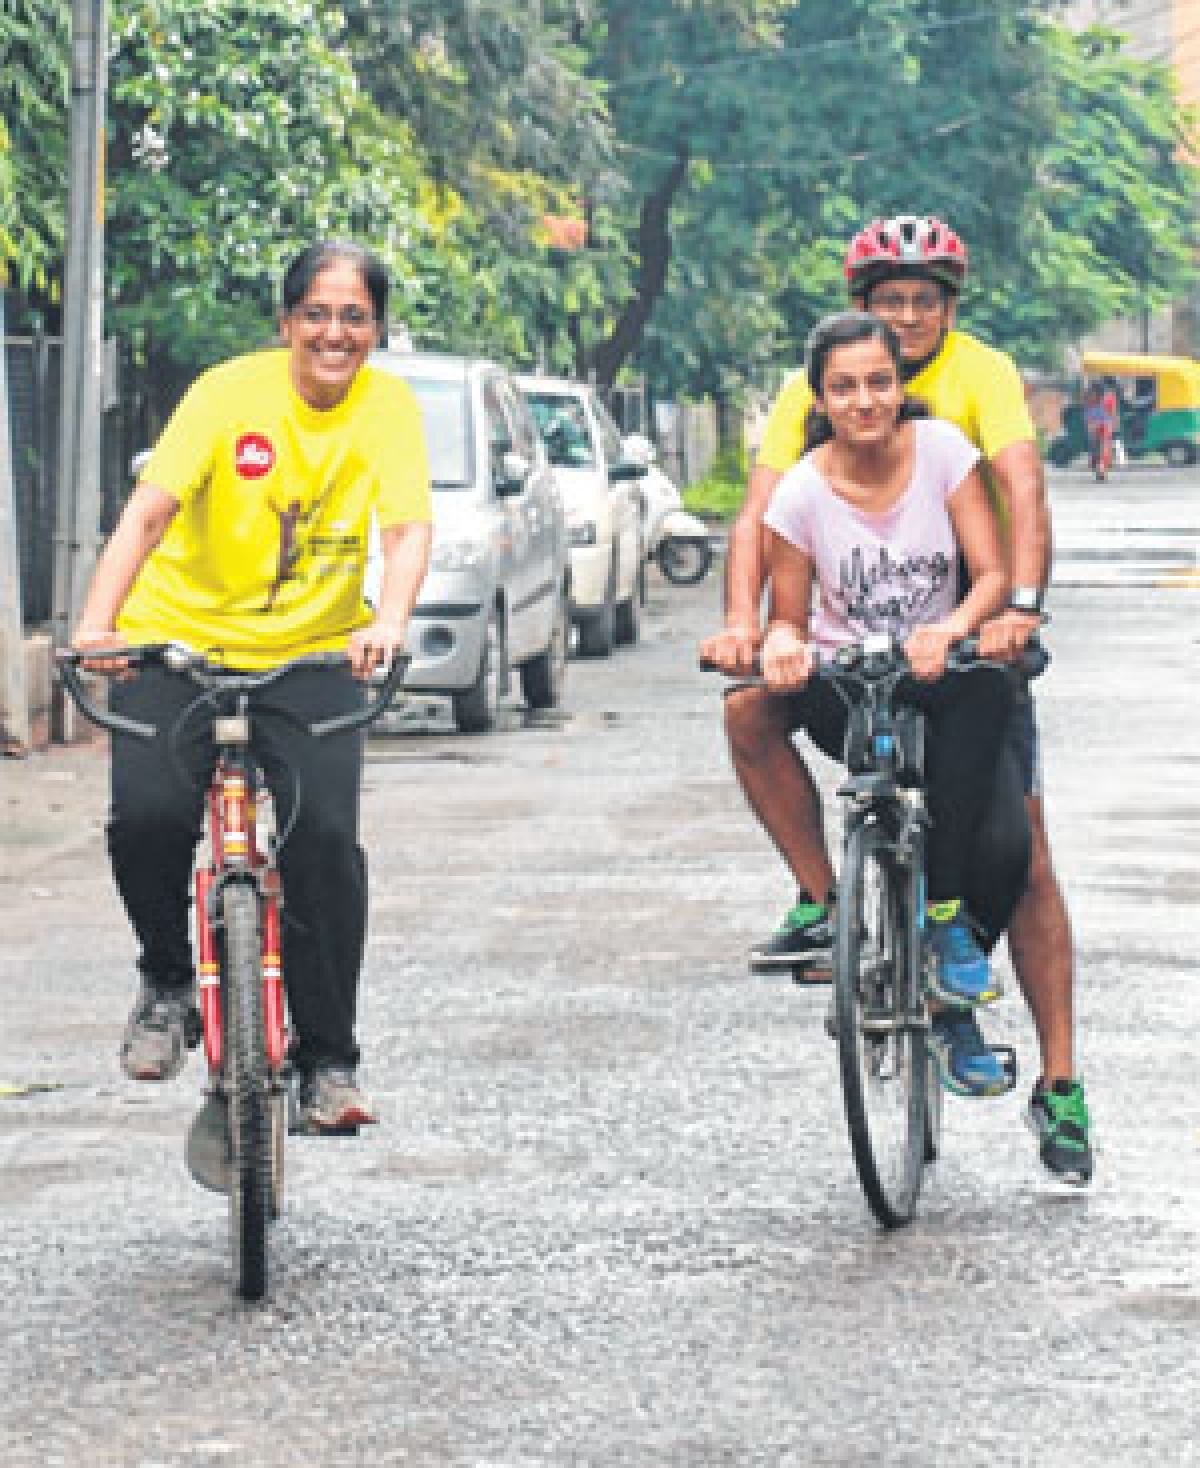 Free Press Cycling Initiative: 54-year-old pedal pusher young at heart and health